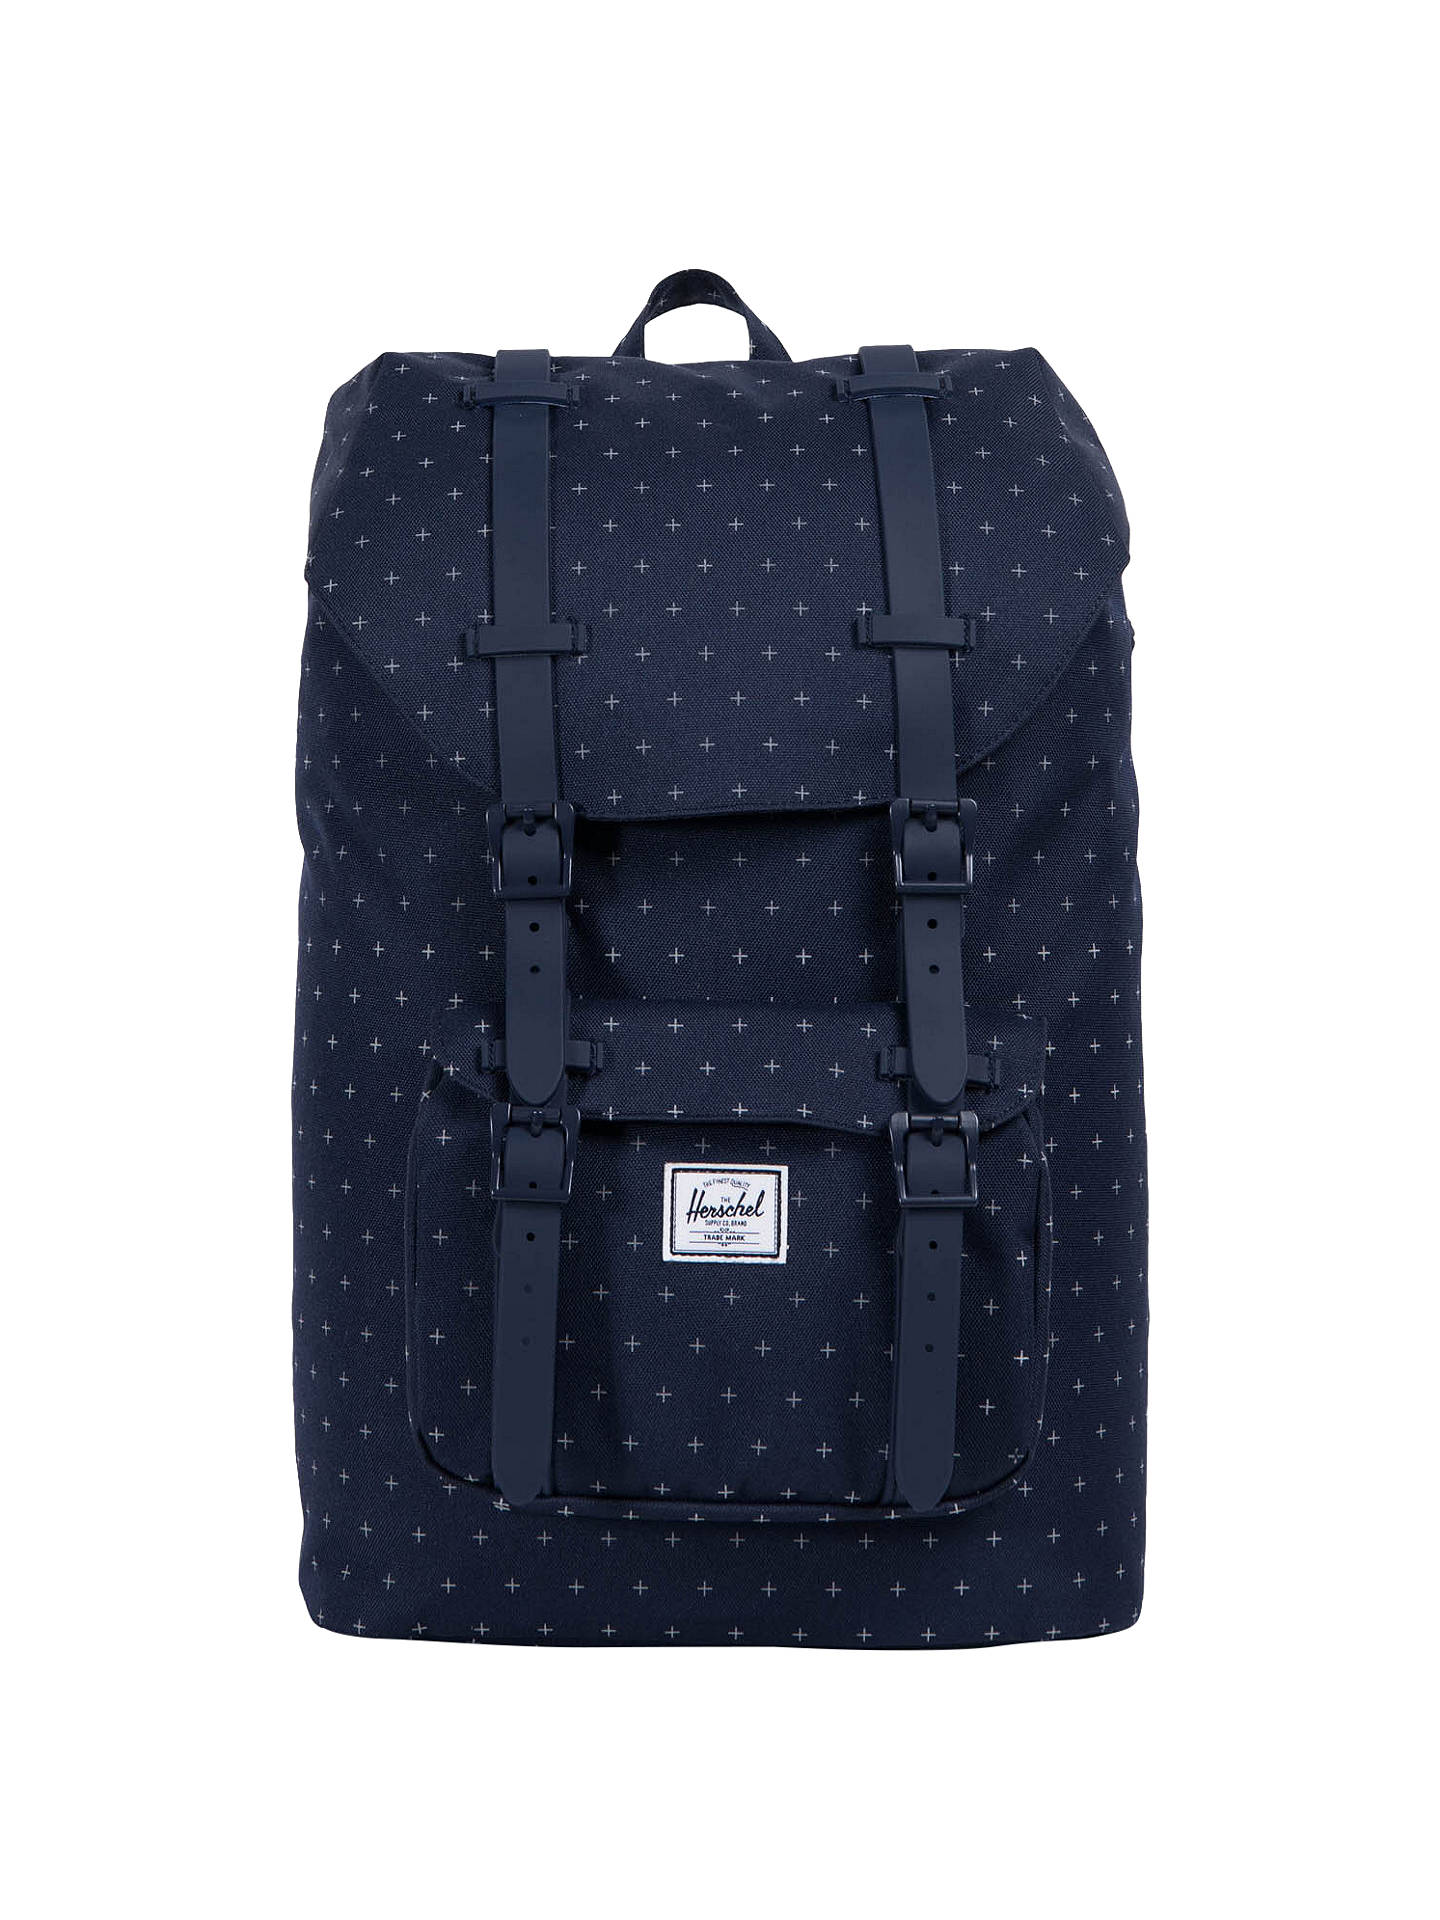 6b2617ff2 Buy Herschel Supply Co. Little America Mid-Volume Backpack, Peacoat Grid  Online at ...